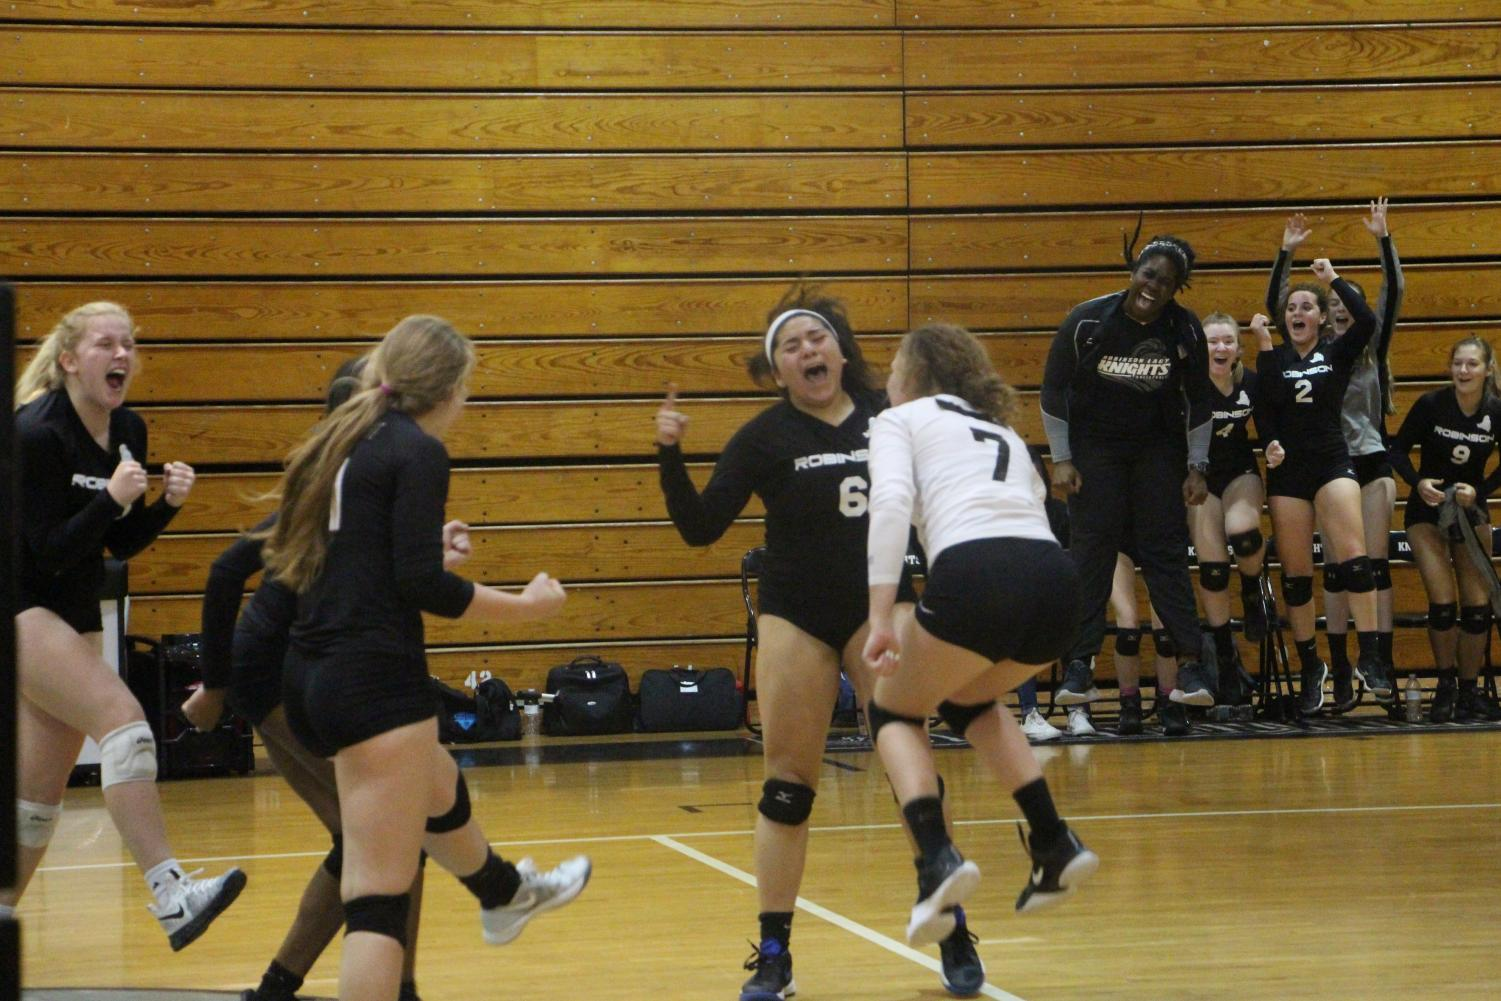 The Lady Knights cheer after Kristin Werdine ('19) attacks the ball for a kill in the third set.